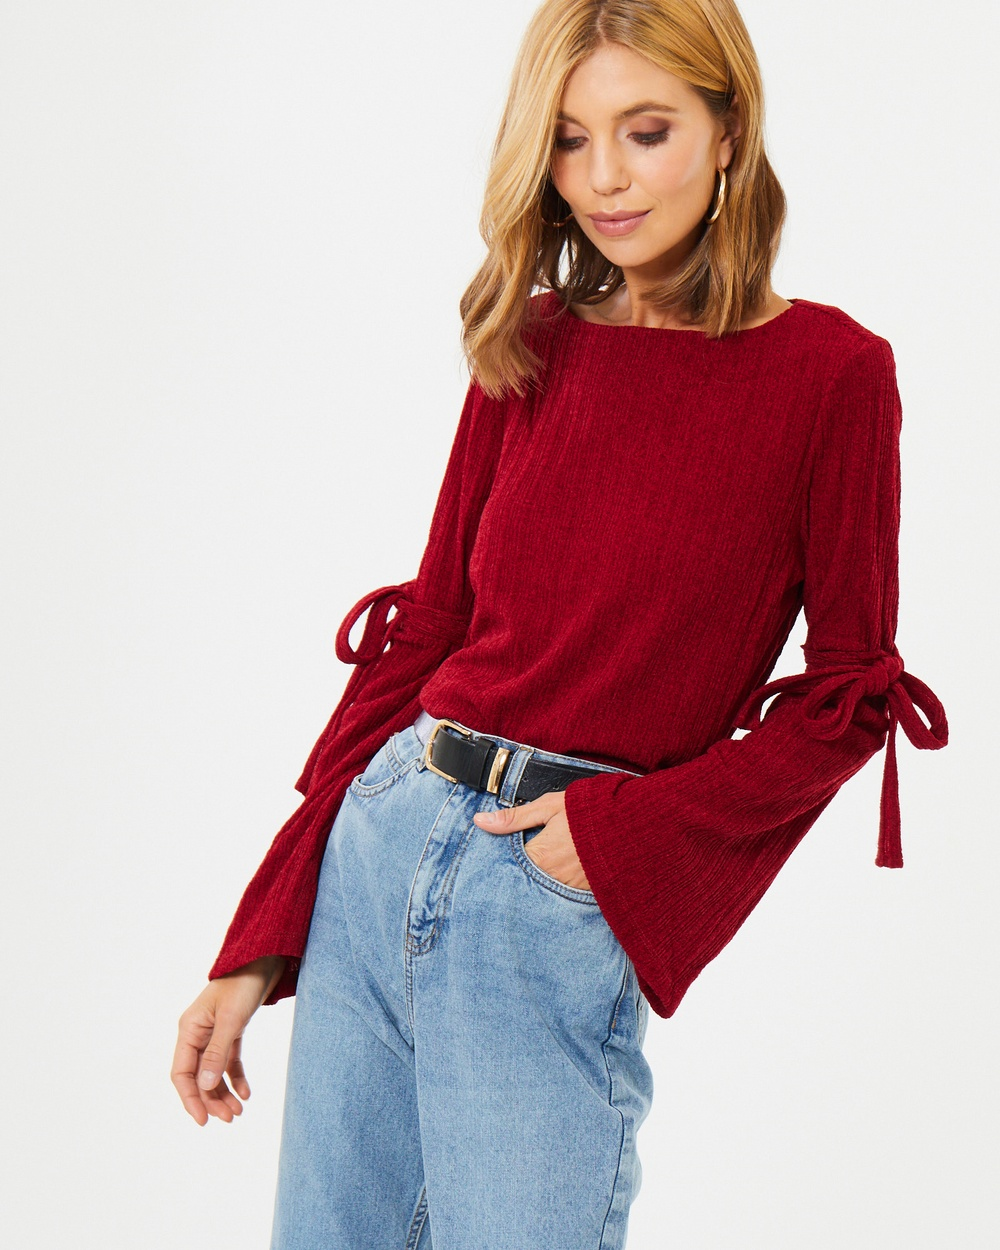 Calli Riona Tie Sleeve Knit Top Tops Red Riona Tie-Sleeve Knit Top